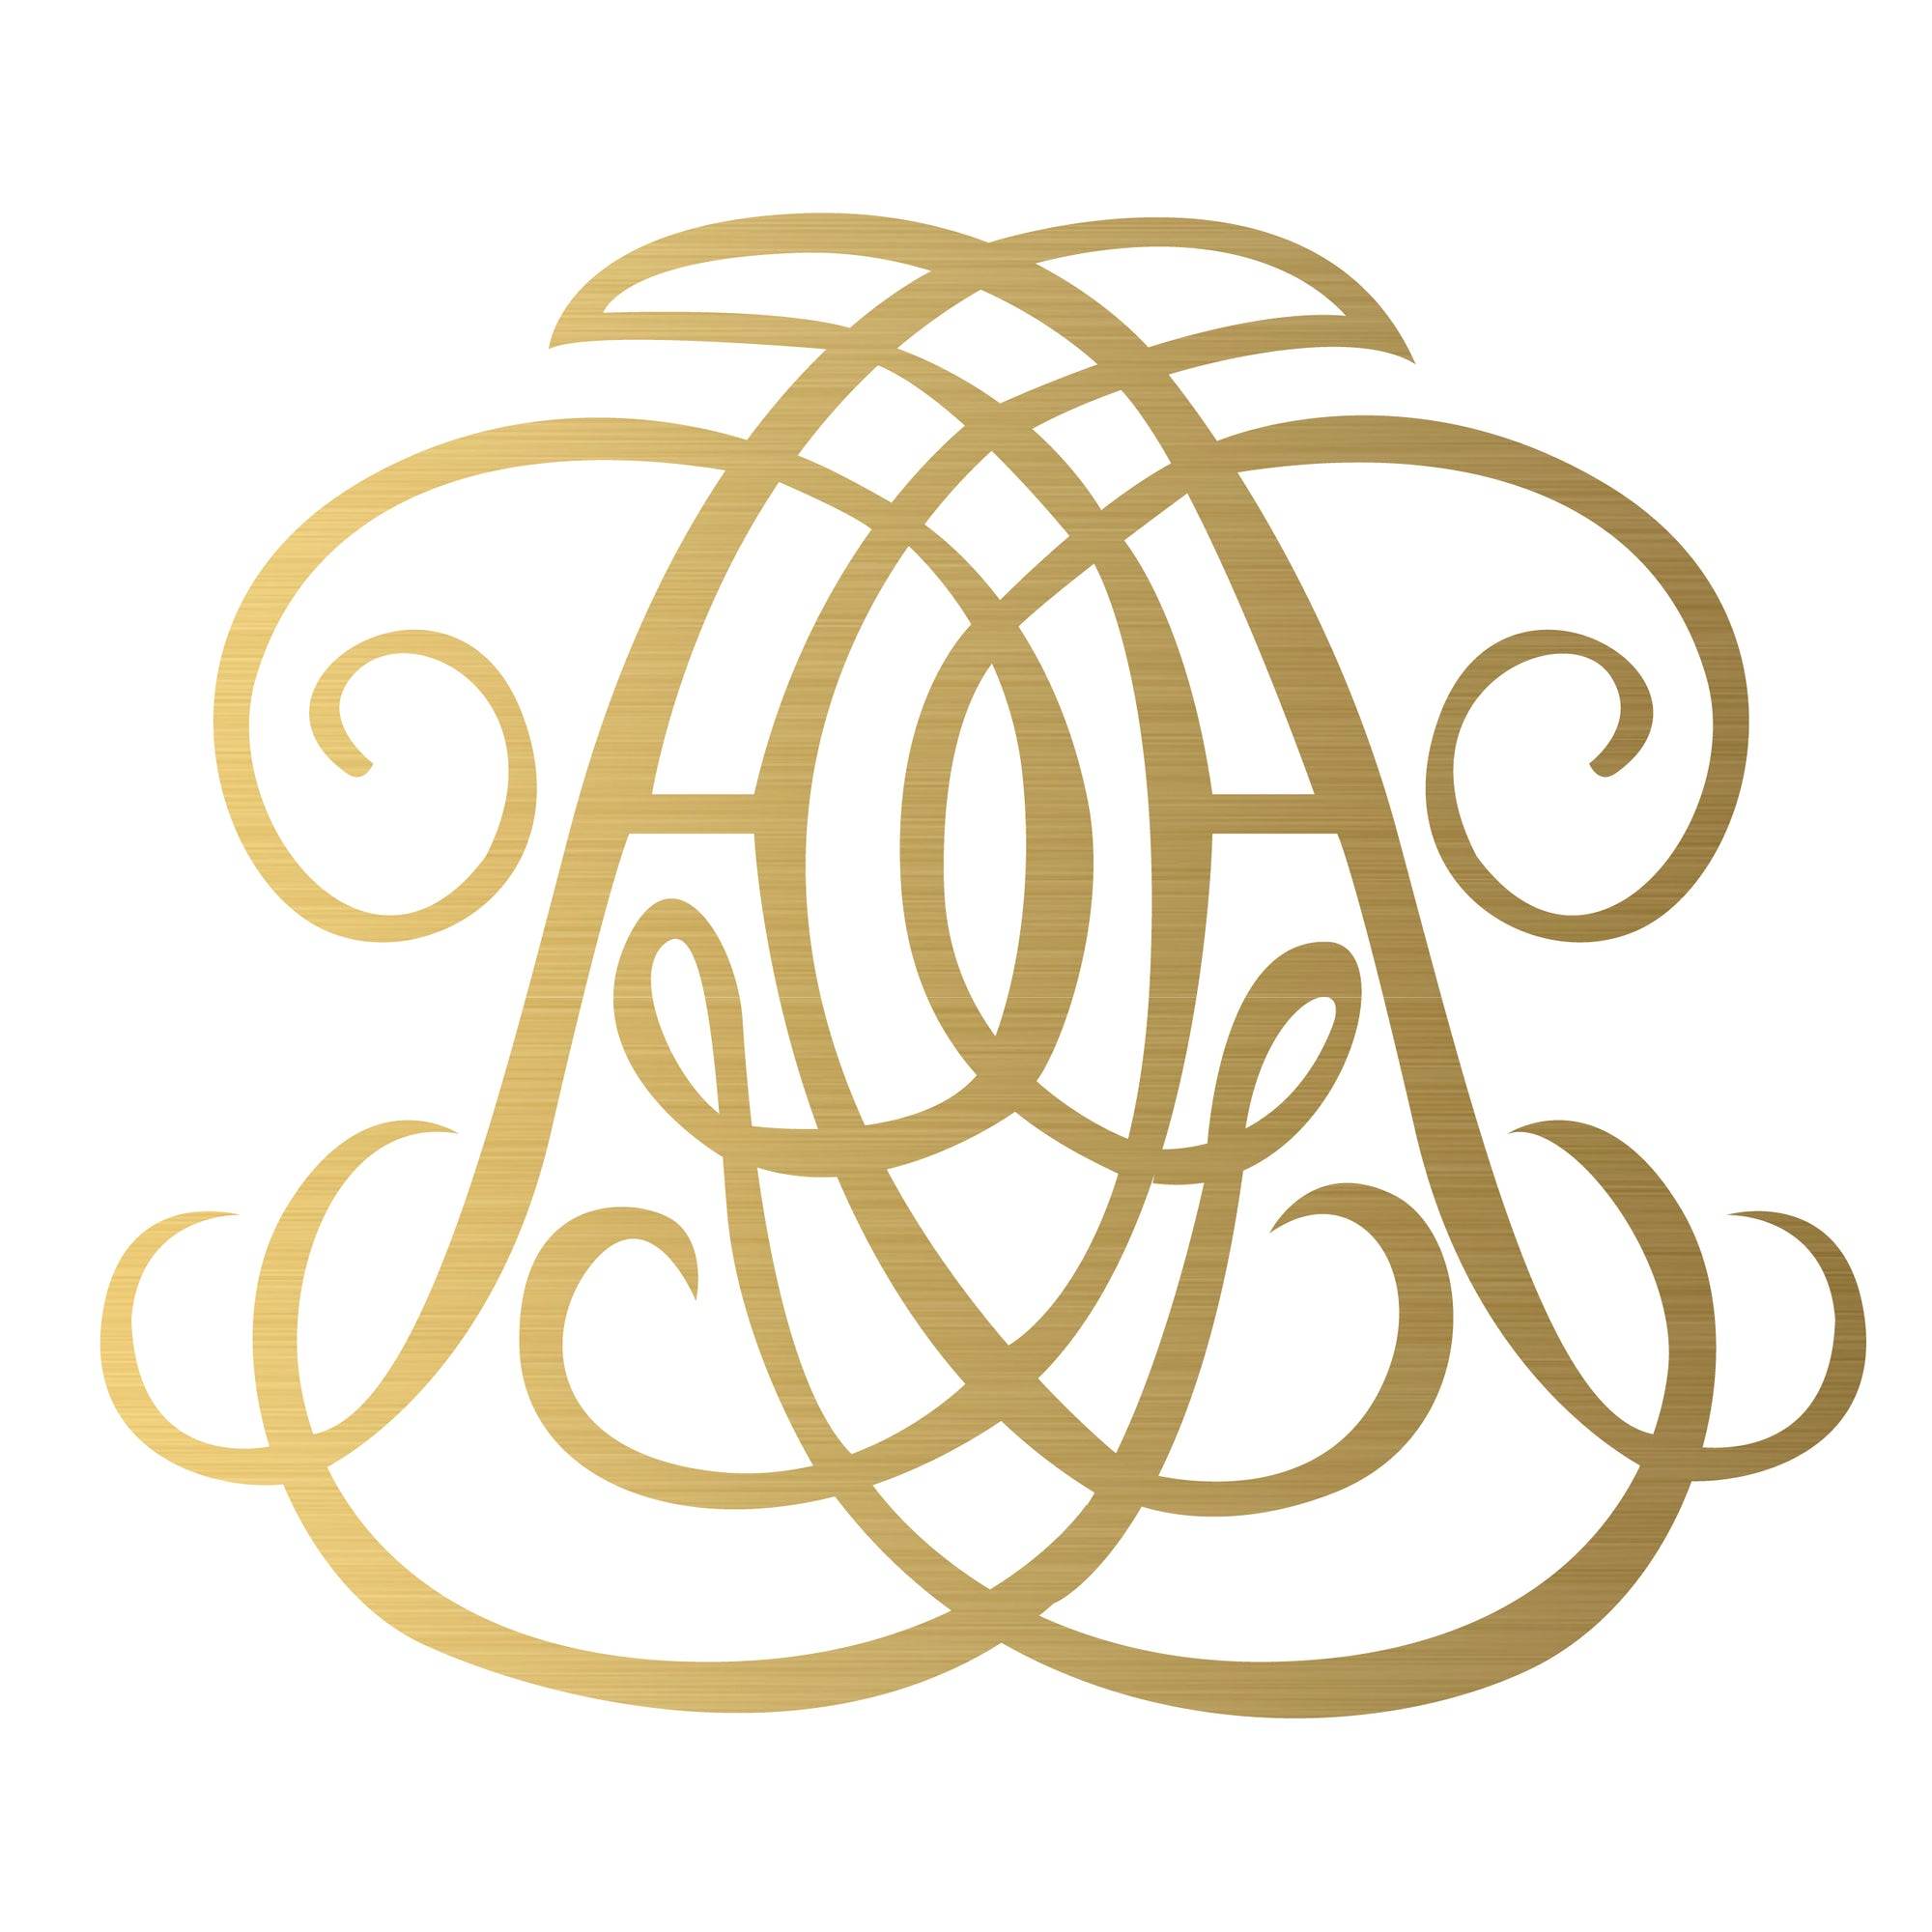 3 Or 4 Letter Couture Monogram